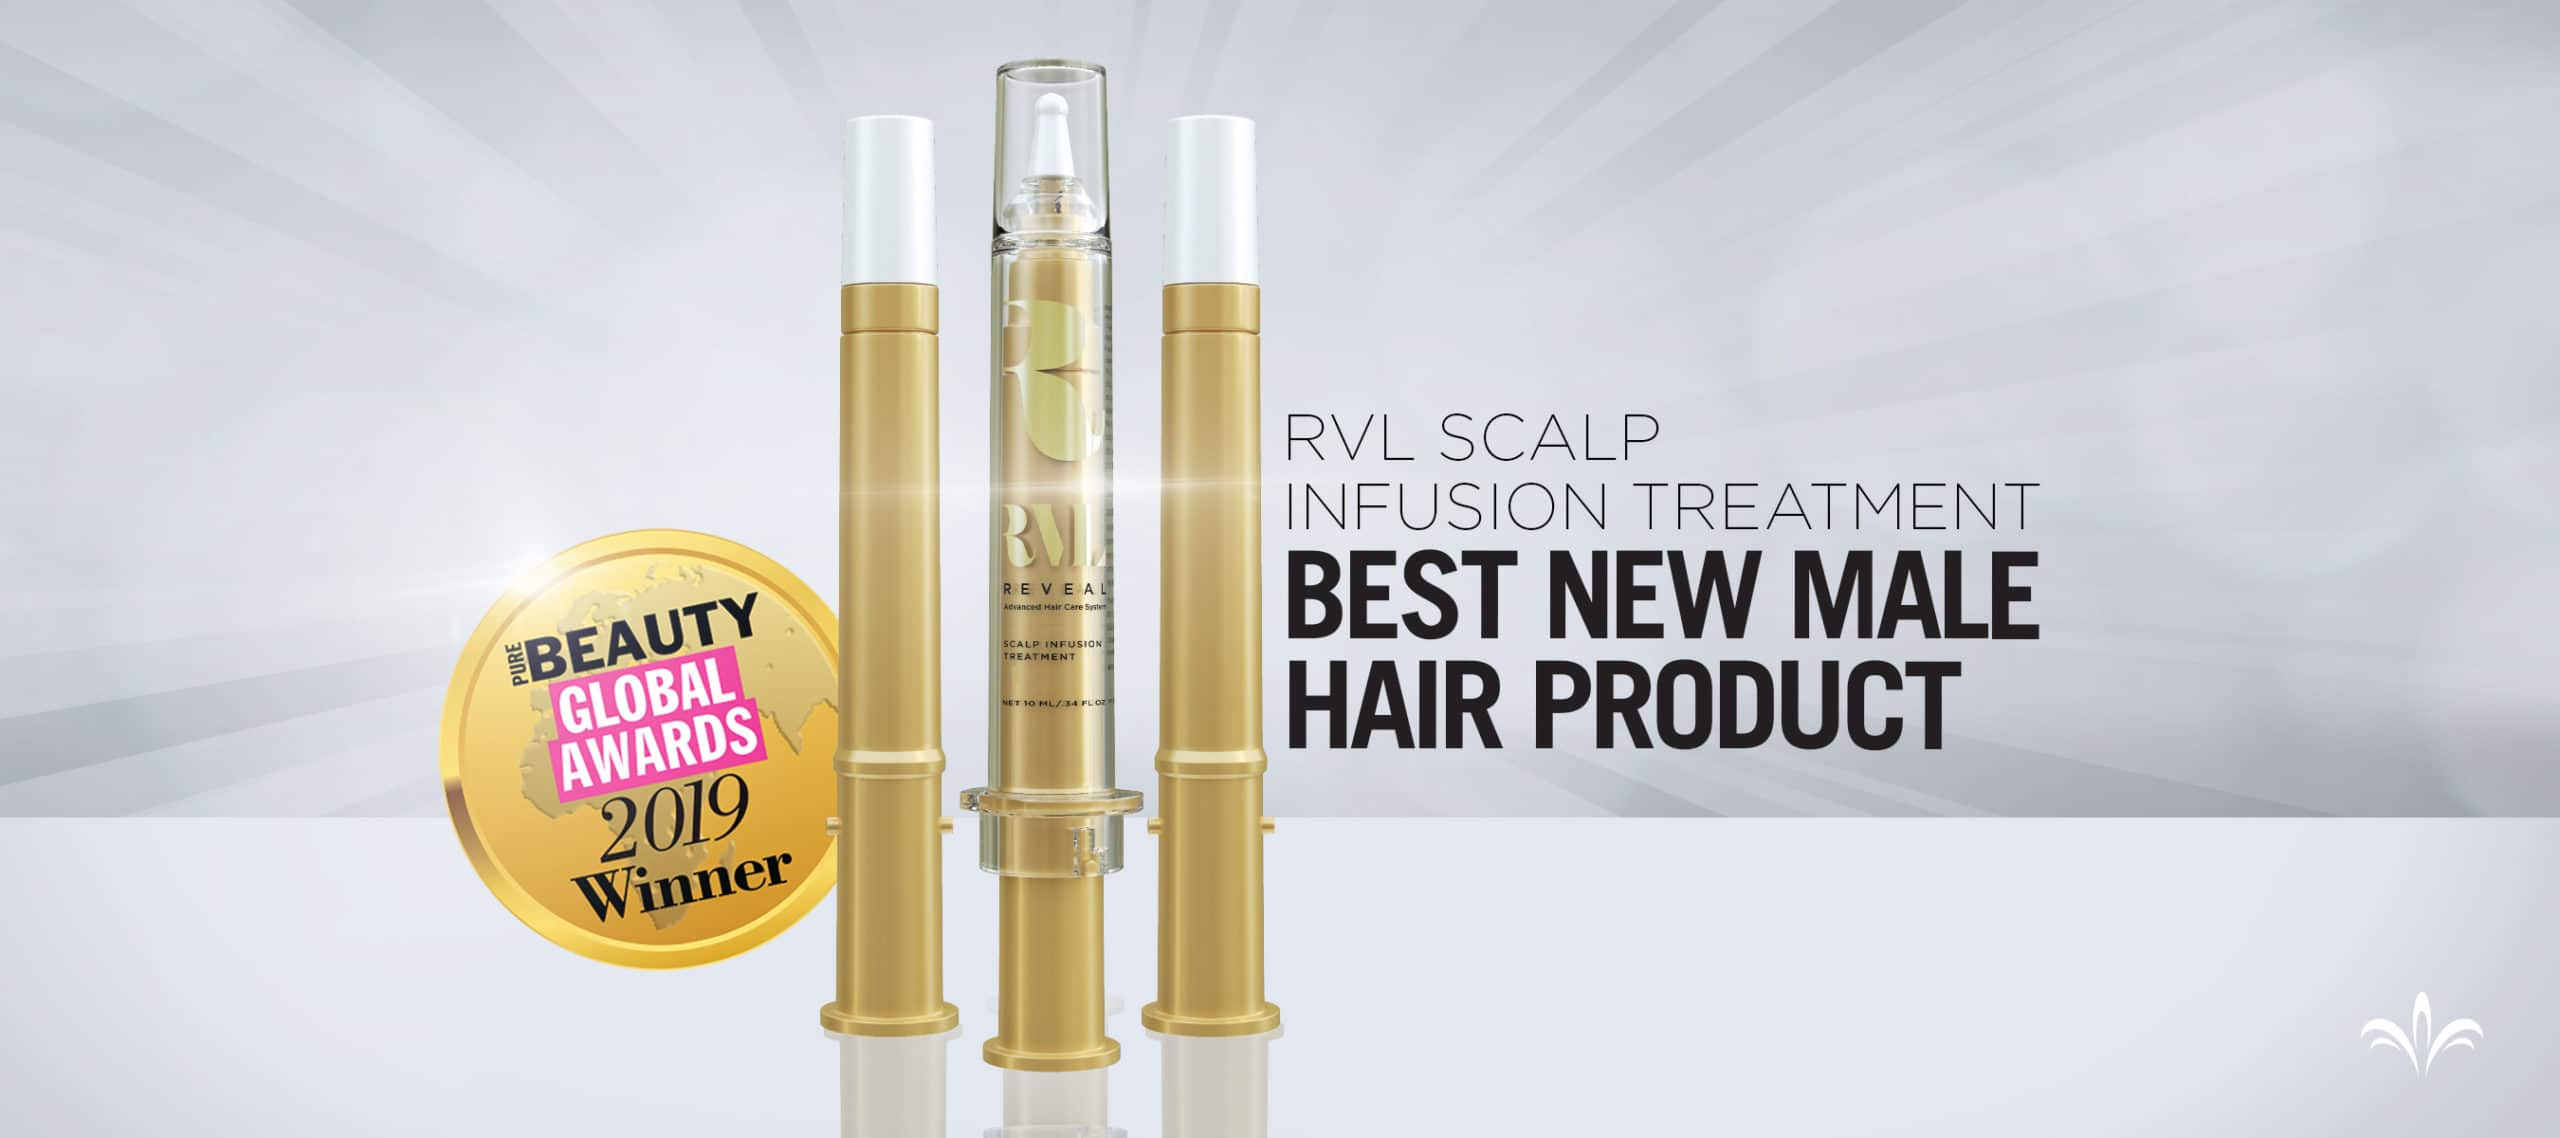 RVL Best Men's Hair Care